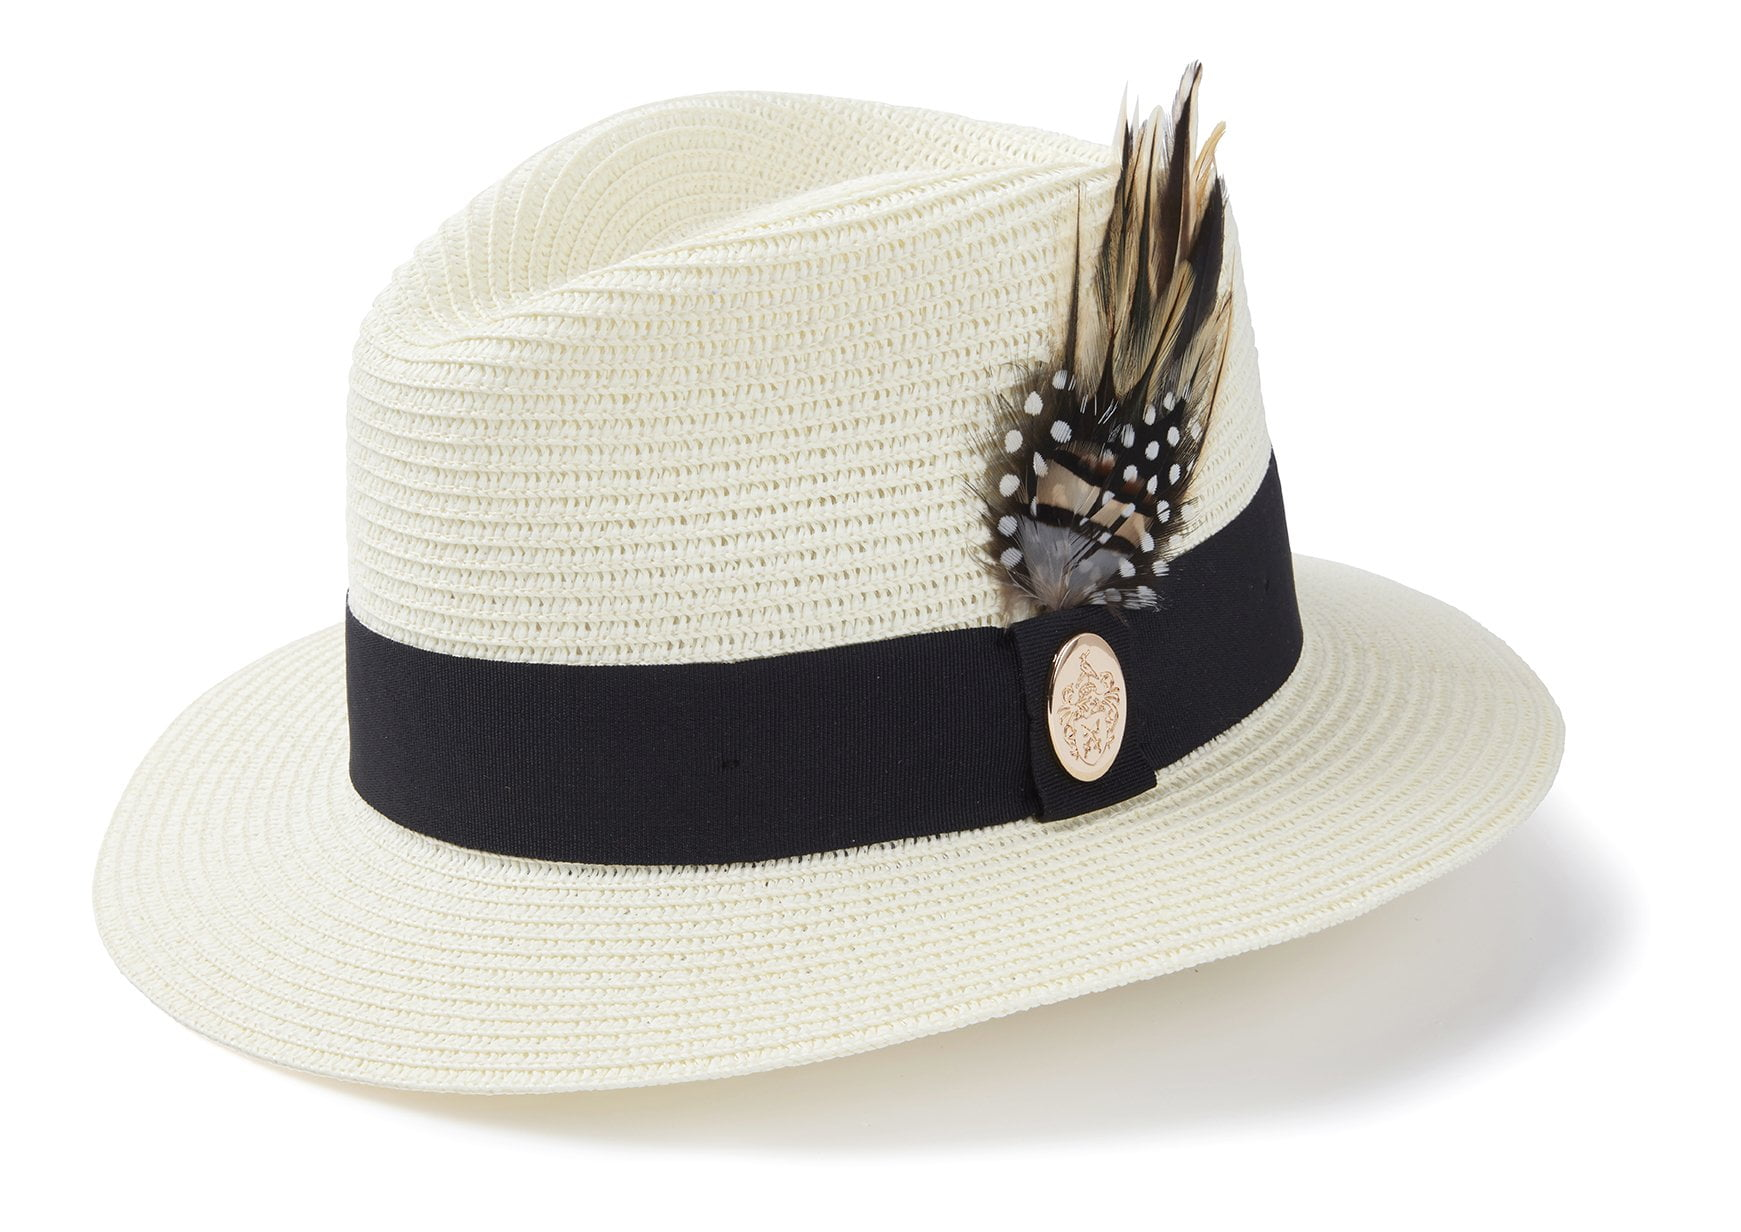 hicks-brown-fedora-the-aldeburgh-fedora-in-cream-black-ribbon-cream-aldeburgh-fedora-black-ribbon-guinea-and-pheasant-feather-hicks-brown-15989308424274